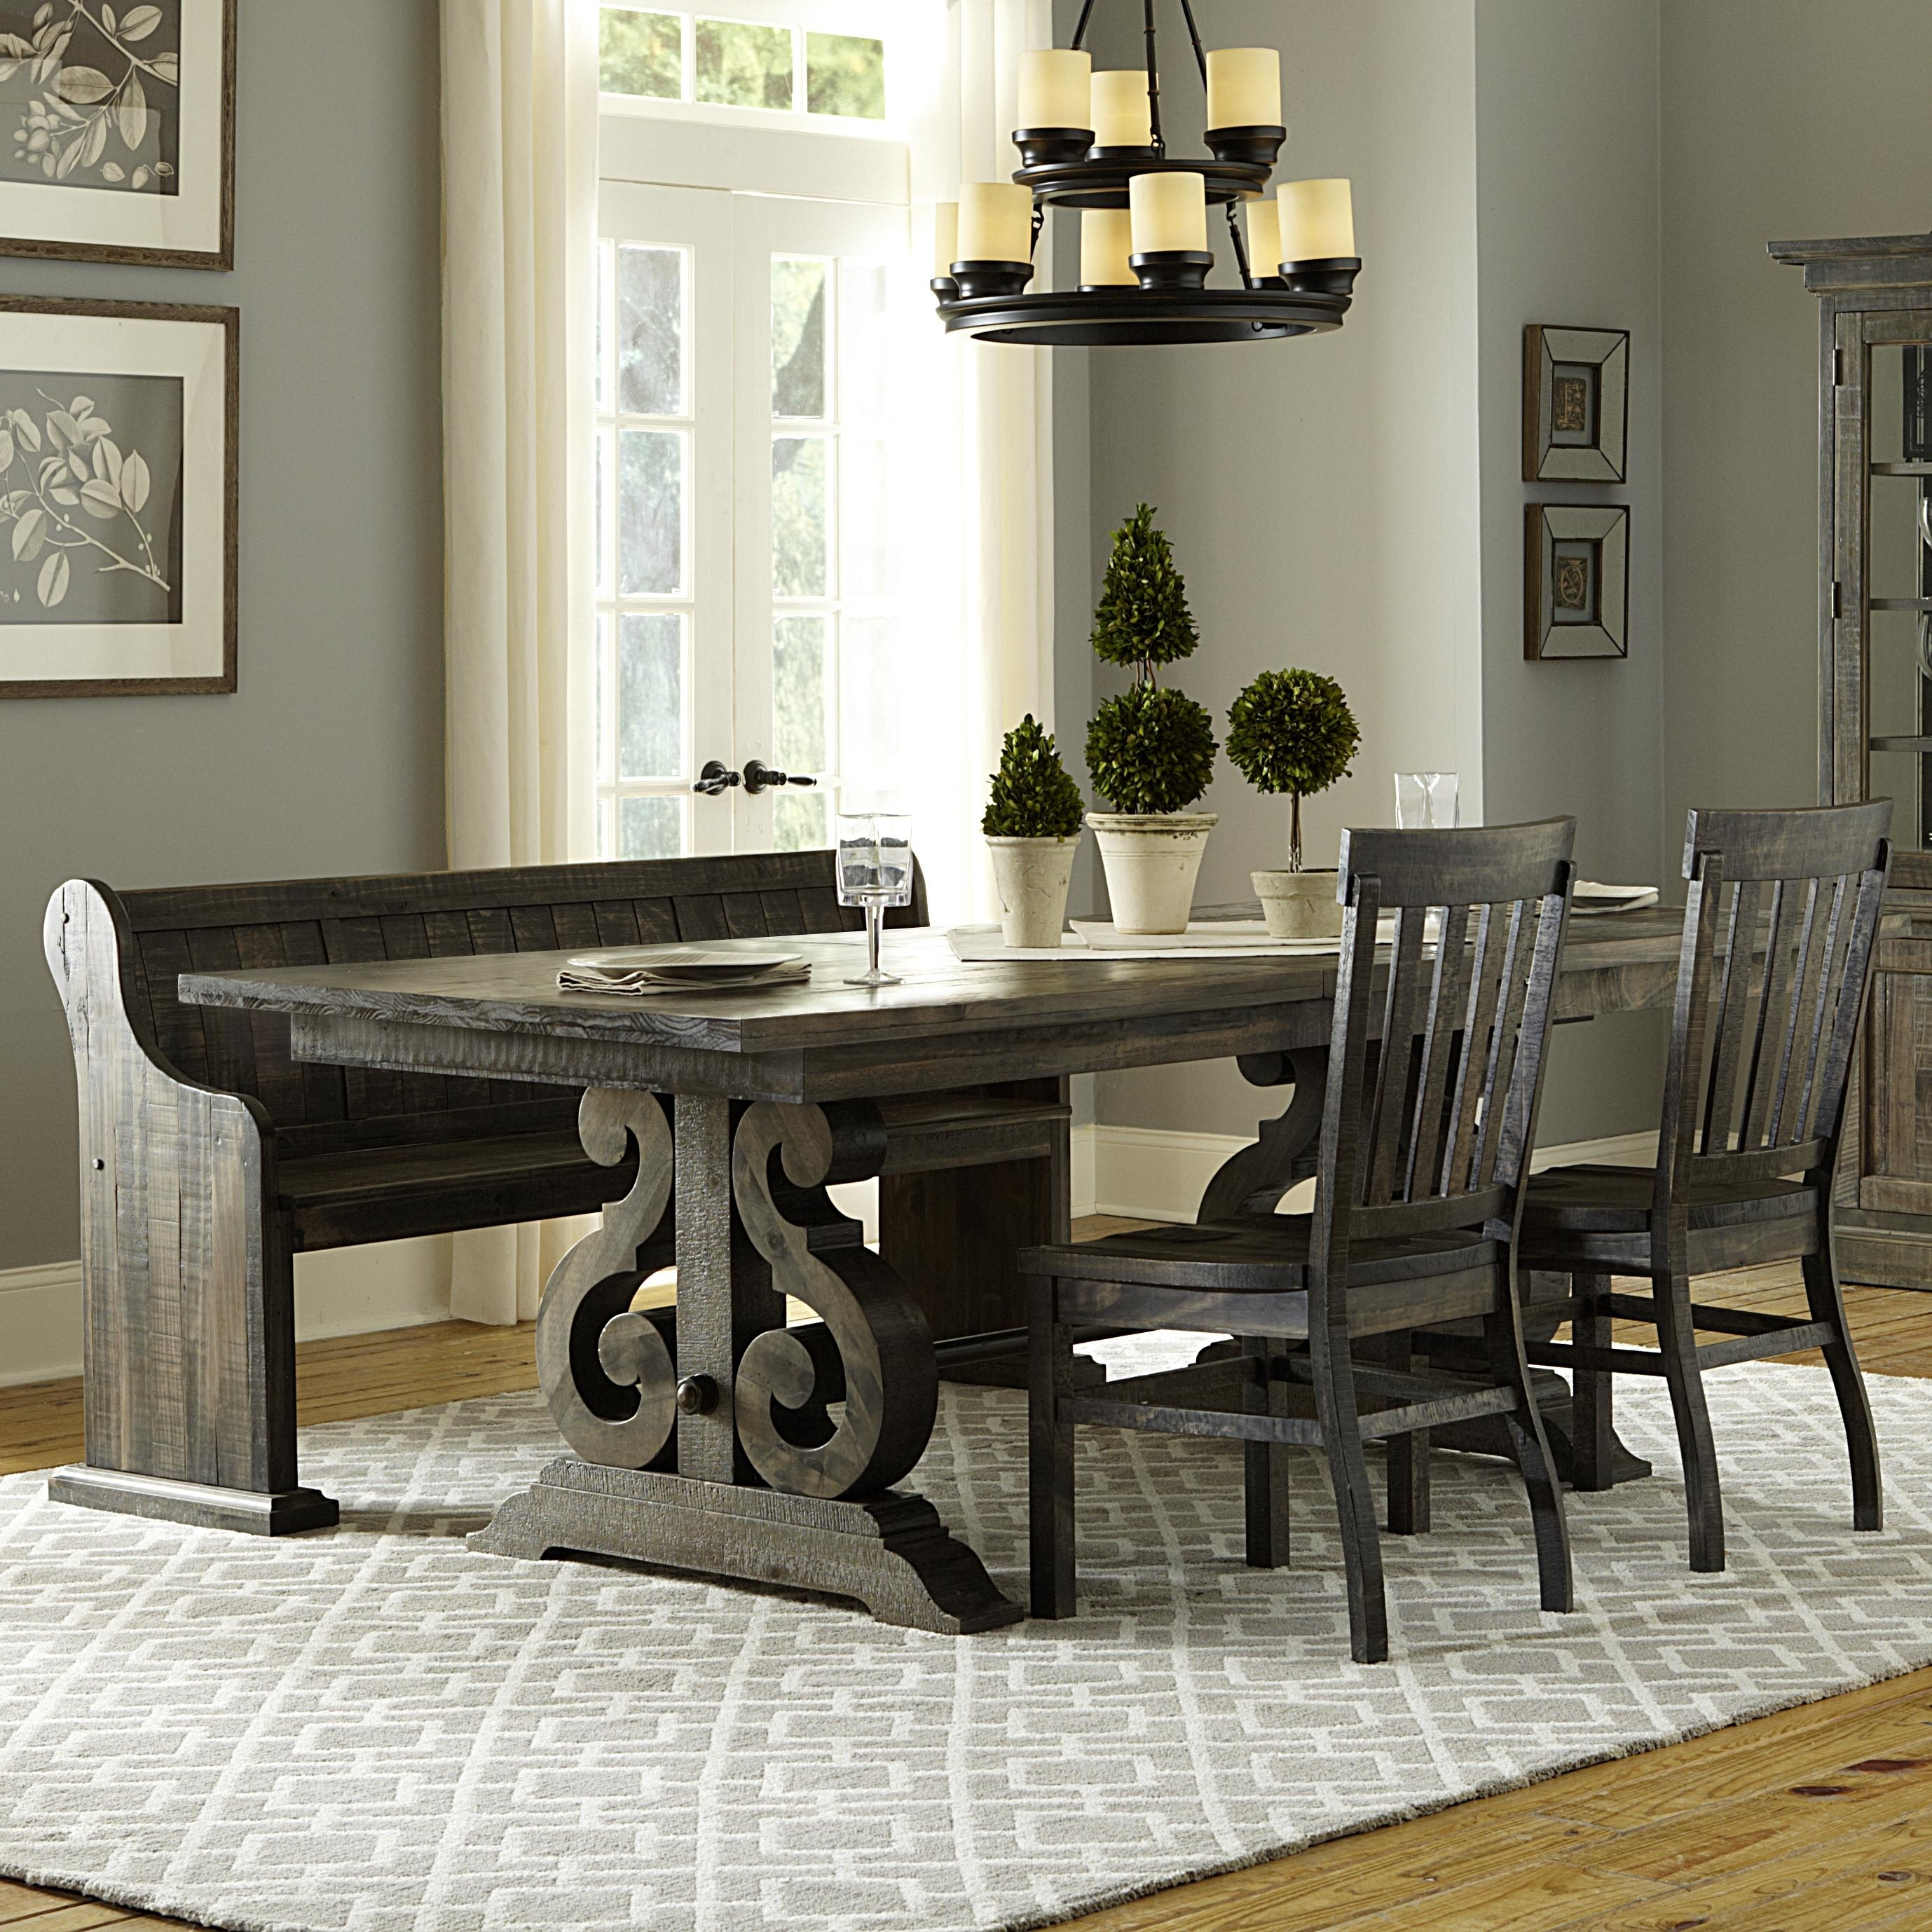 Table And Chair Sets | Baton Rouge And Lafayette, Louisiana Table Pertaining To Best And Newest Market 7 Piece Dining Sets With Side Chairs (View 18 of 20)